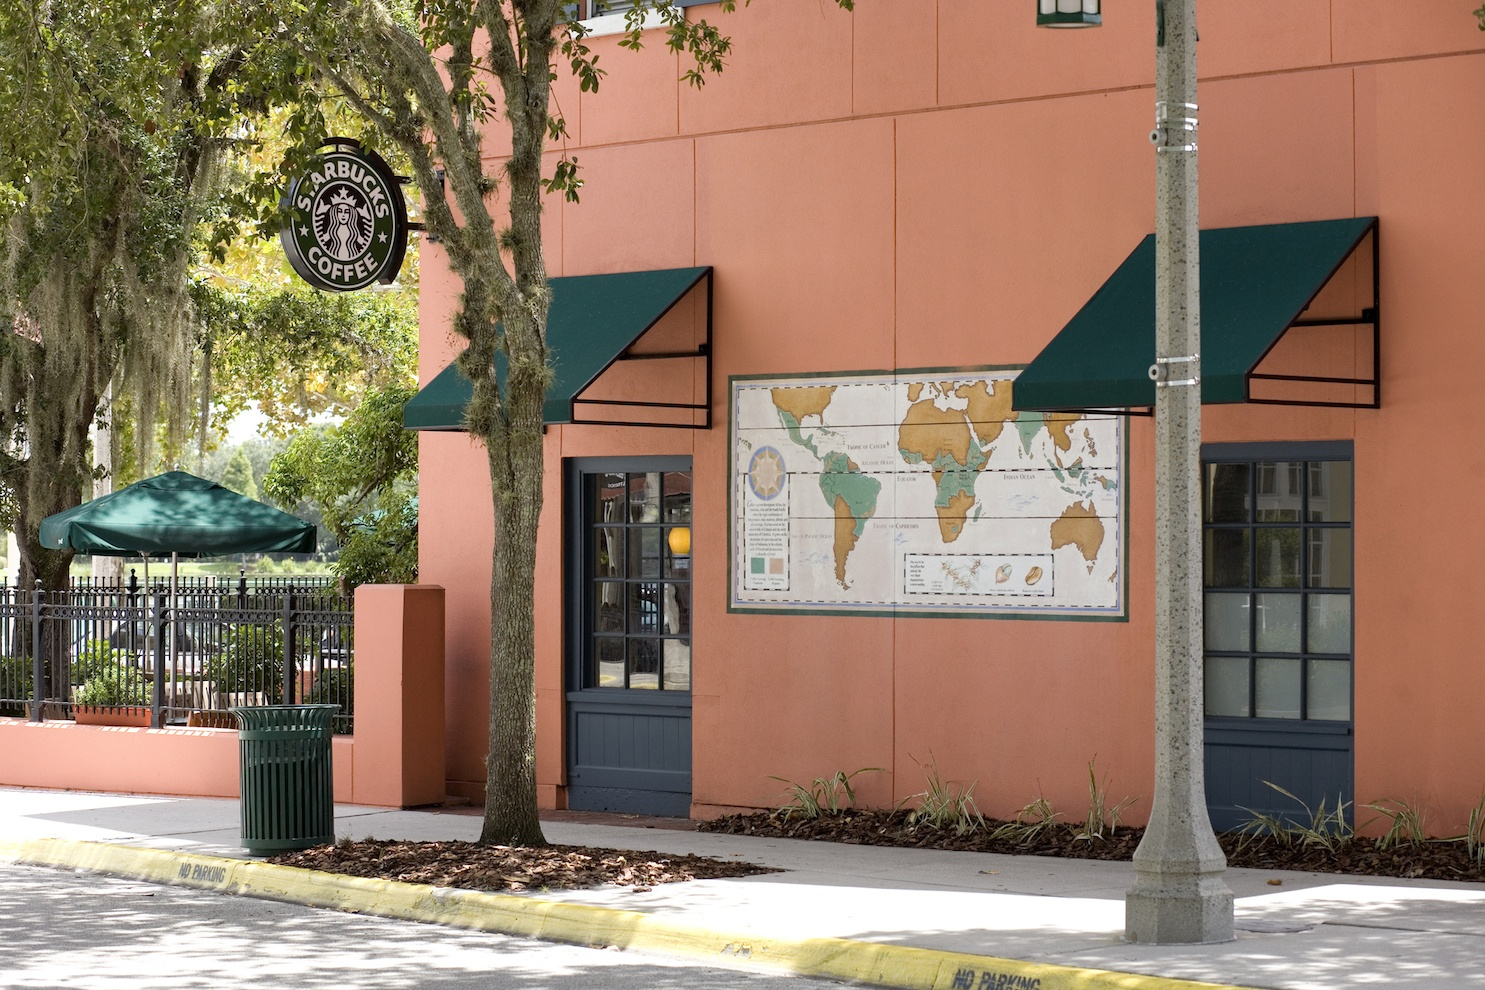 Starbucks Coffee in Celebration Florida